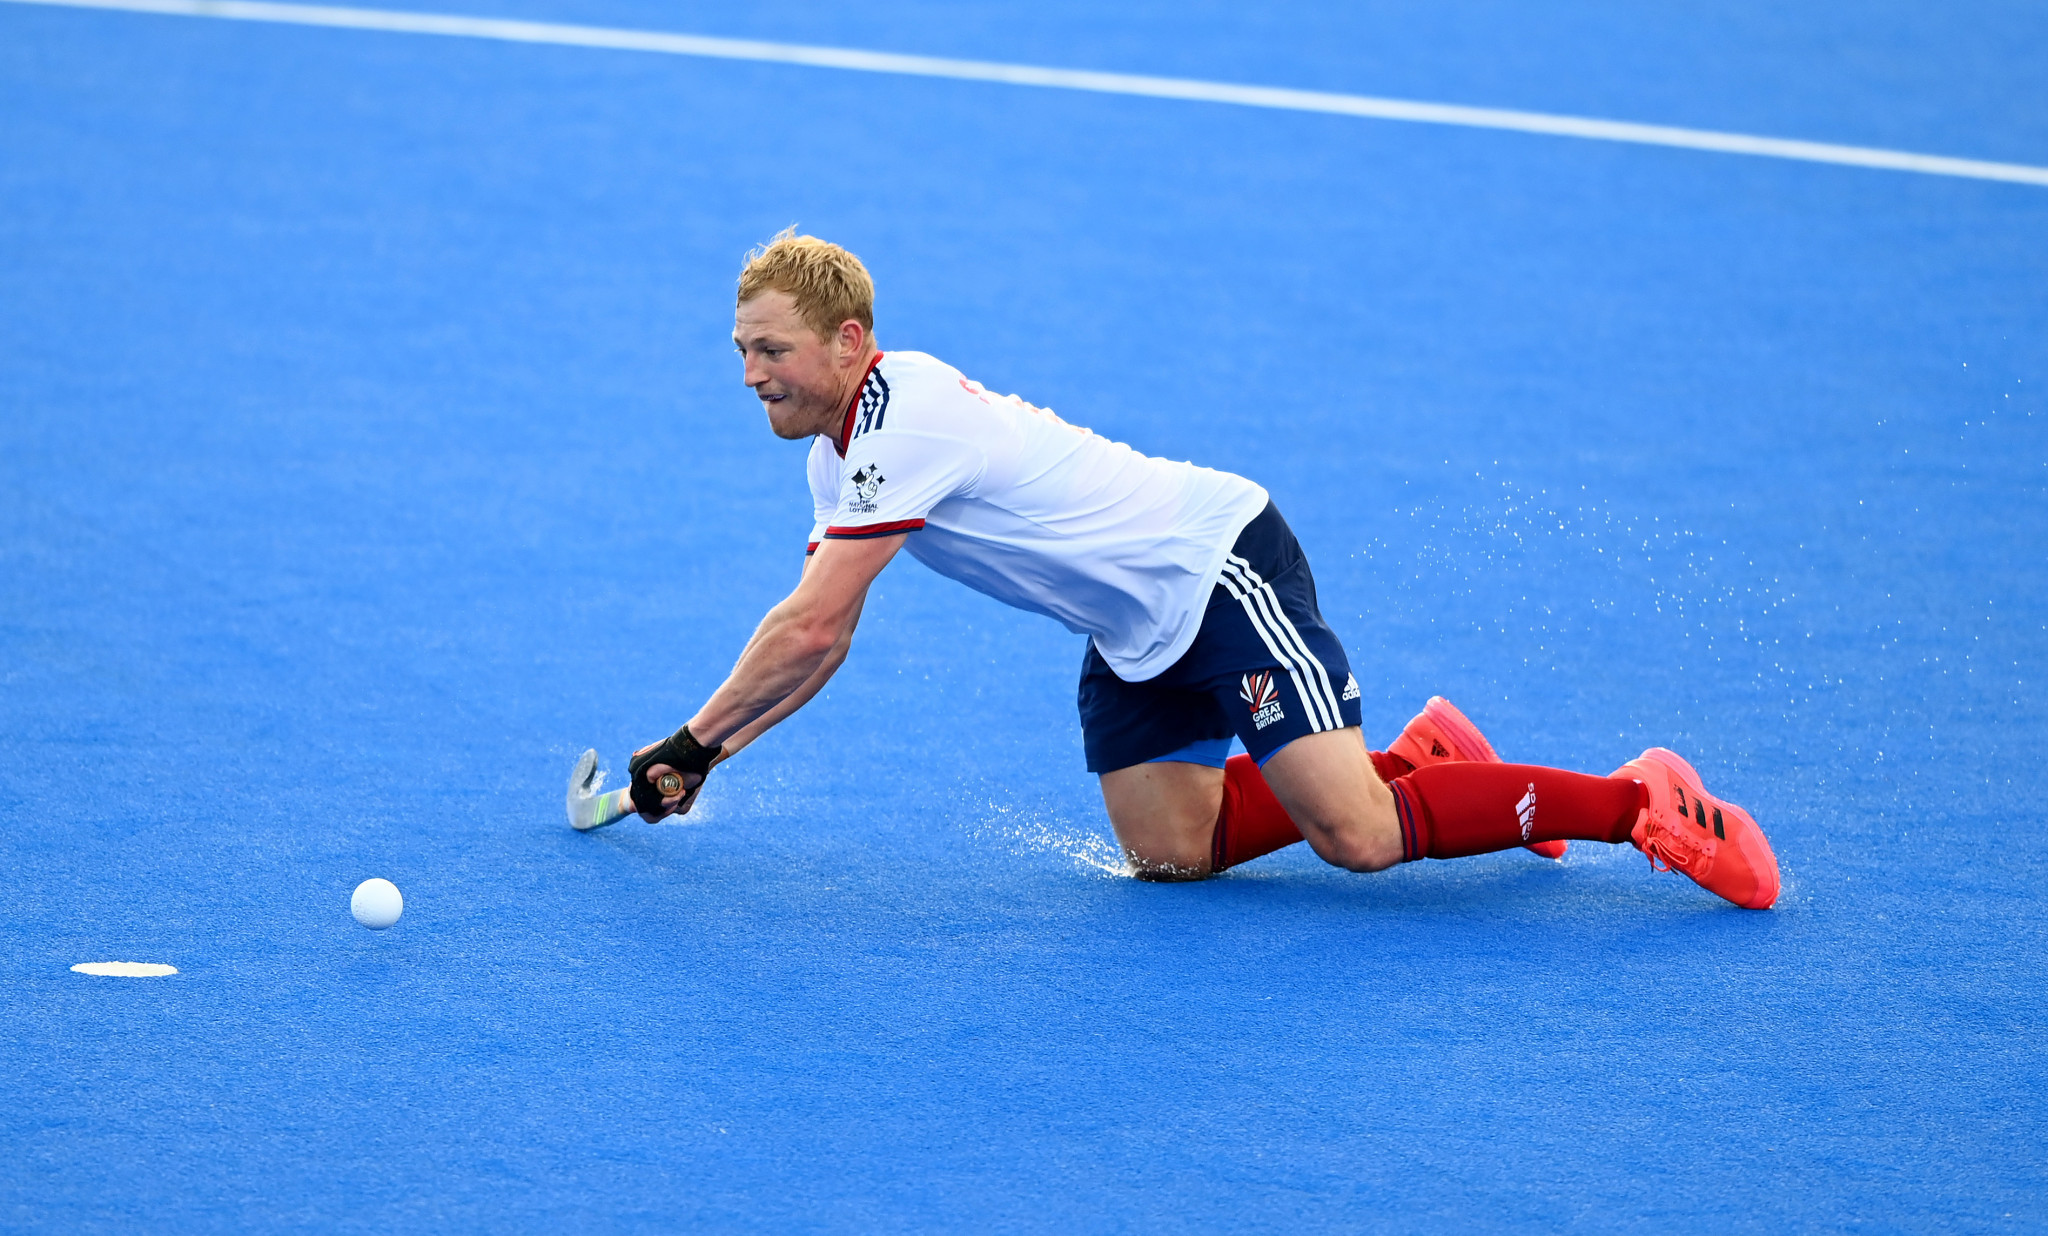 Britain shut out opponents for men's and women's FIH Hockey Pro League wins